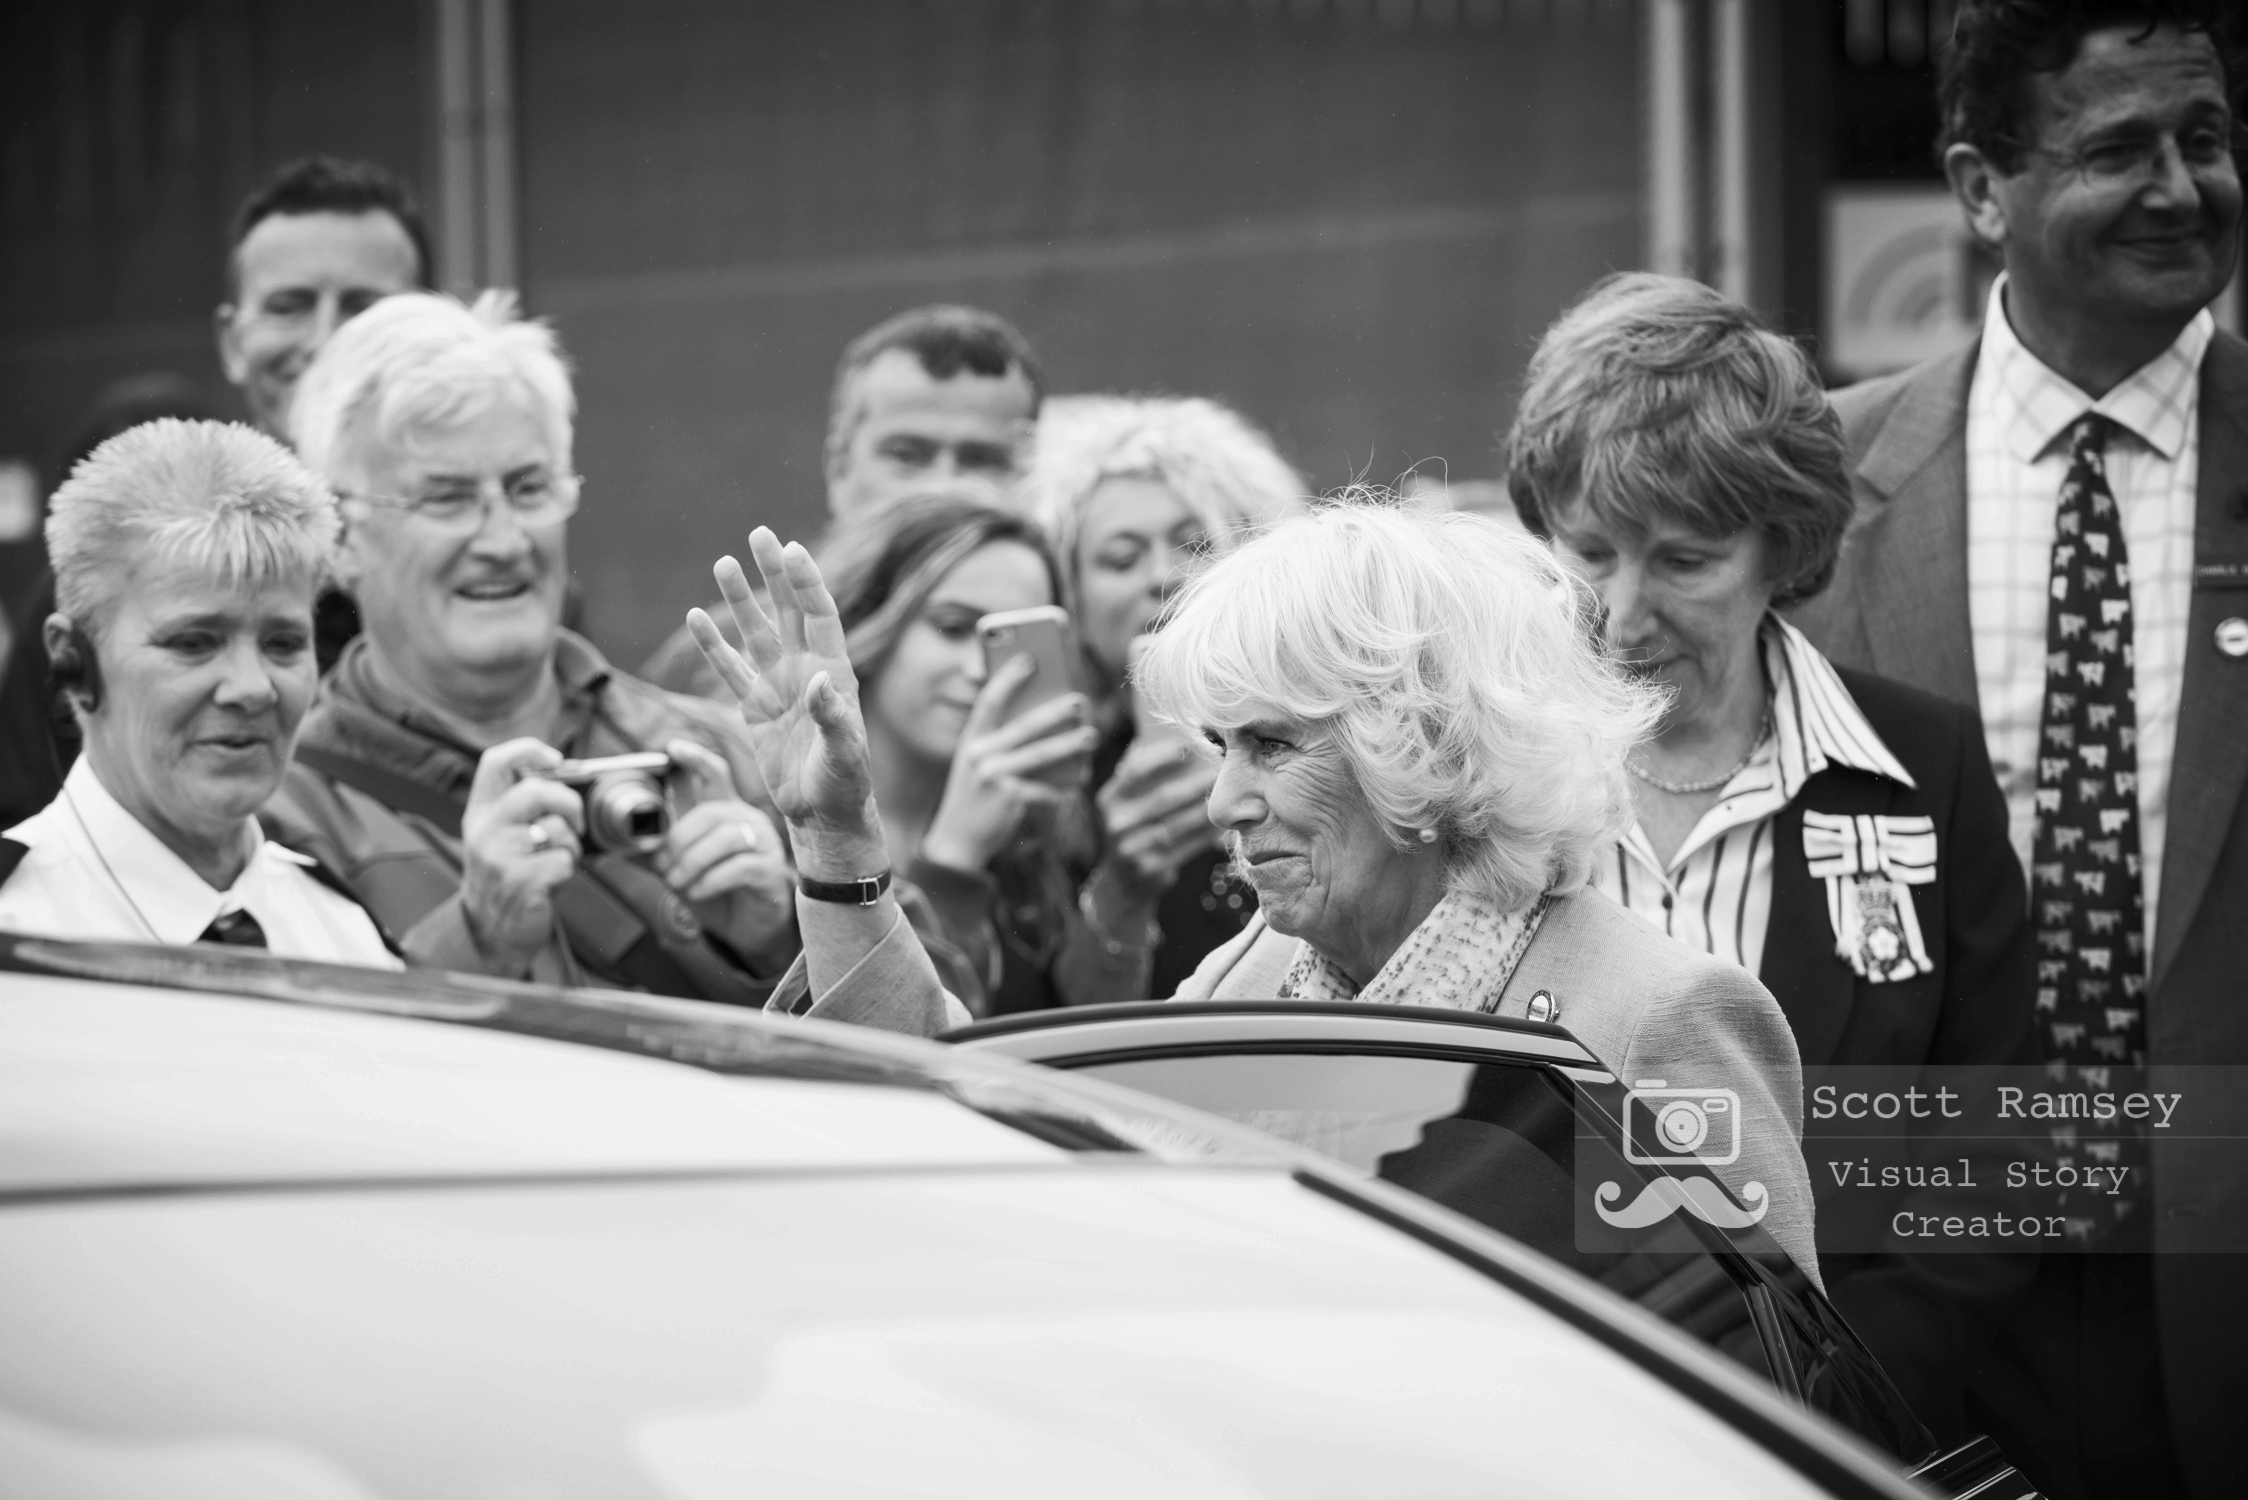 HRH, The Duchess Of Cornwall waves to the crowd as she gets into a car before leaving the 2017 South Of England Show. Photo © Scott Ramsey.